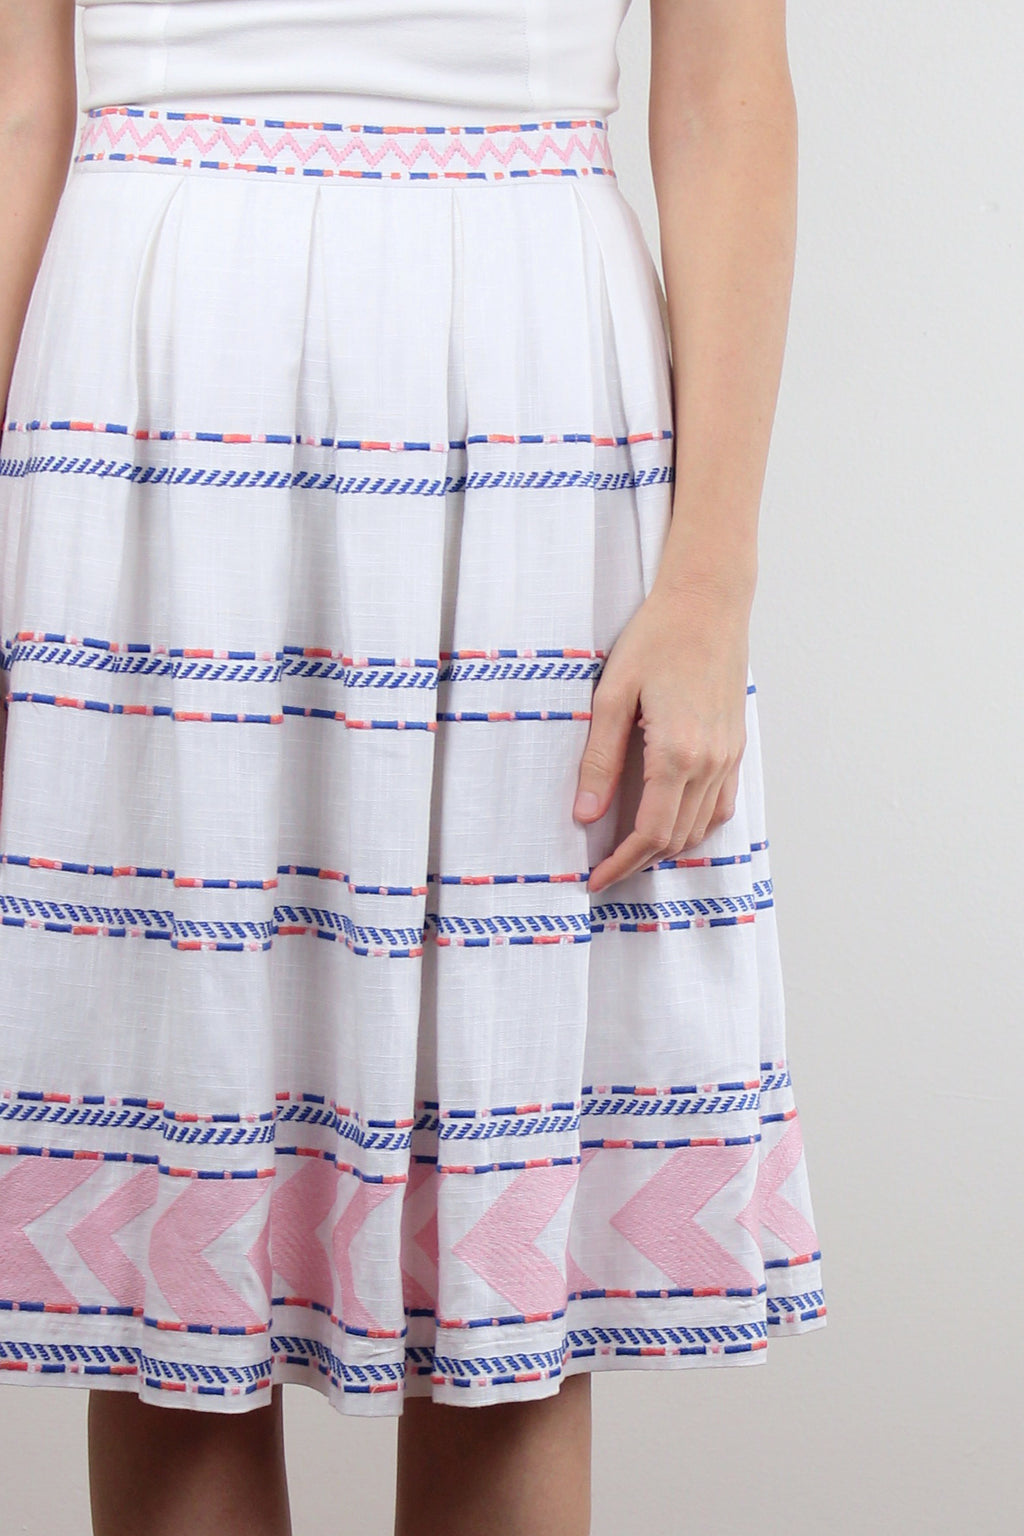 Embroidered midi skirt. Image 7